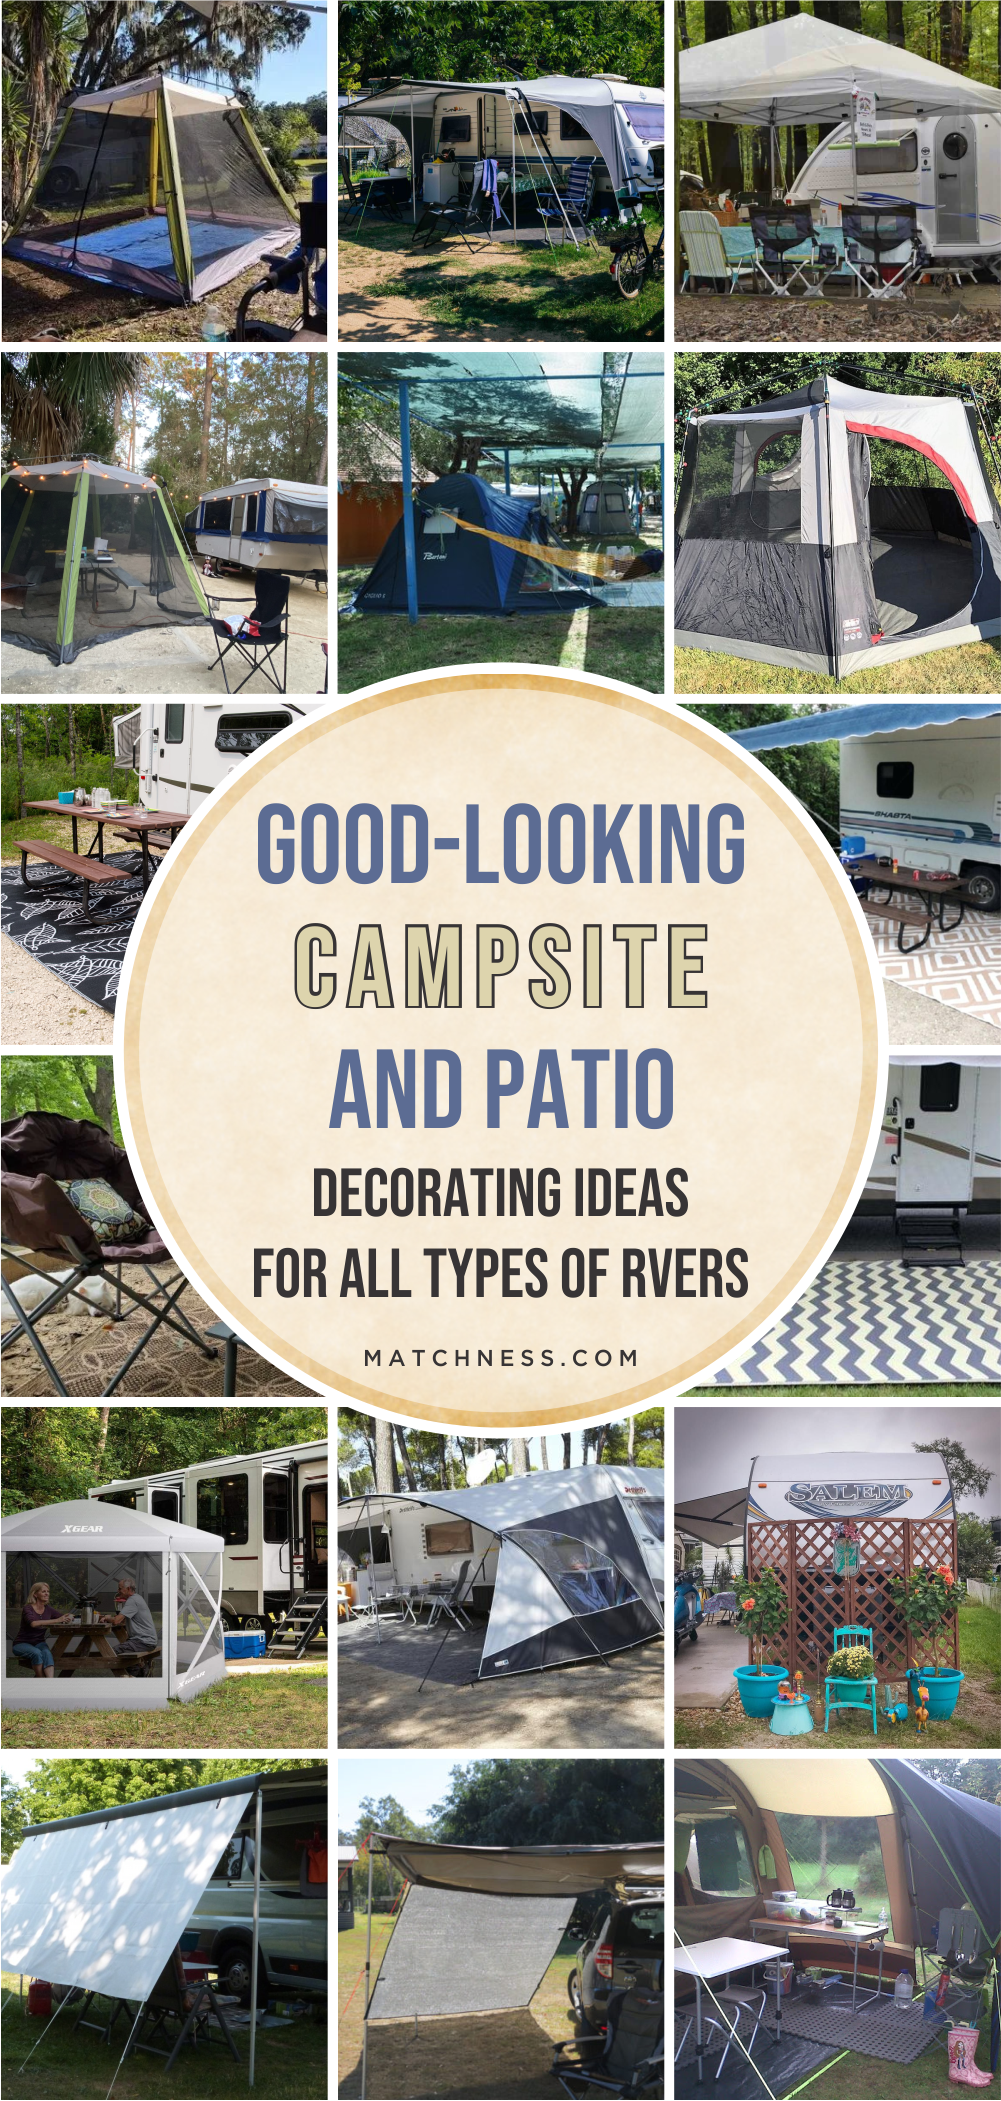 Good-looking-campsite-and-patio-decorating-ideas-for-all-types-of-rvers-1